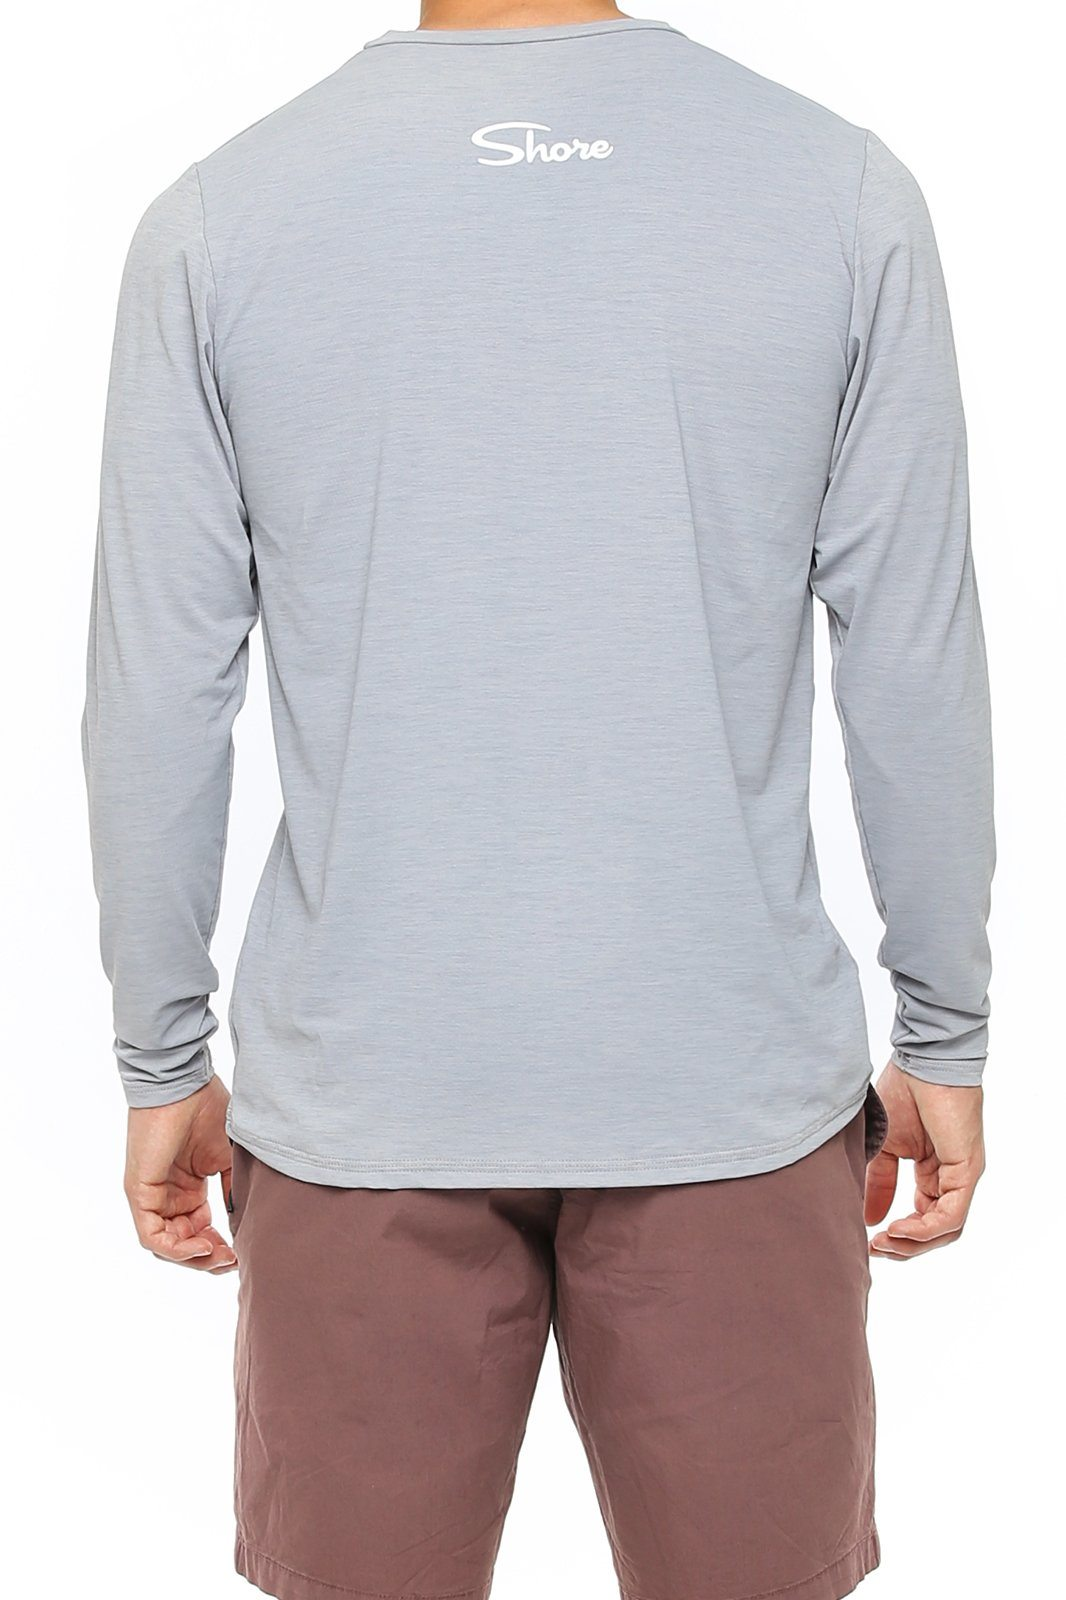 Long Sleeve Rashguard - Coast to Coast - Shore